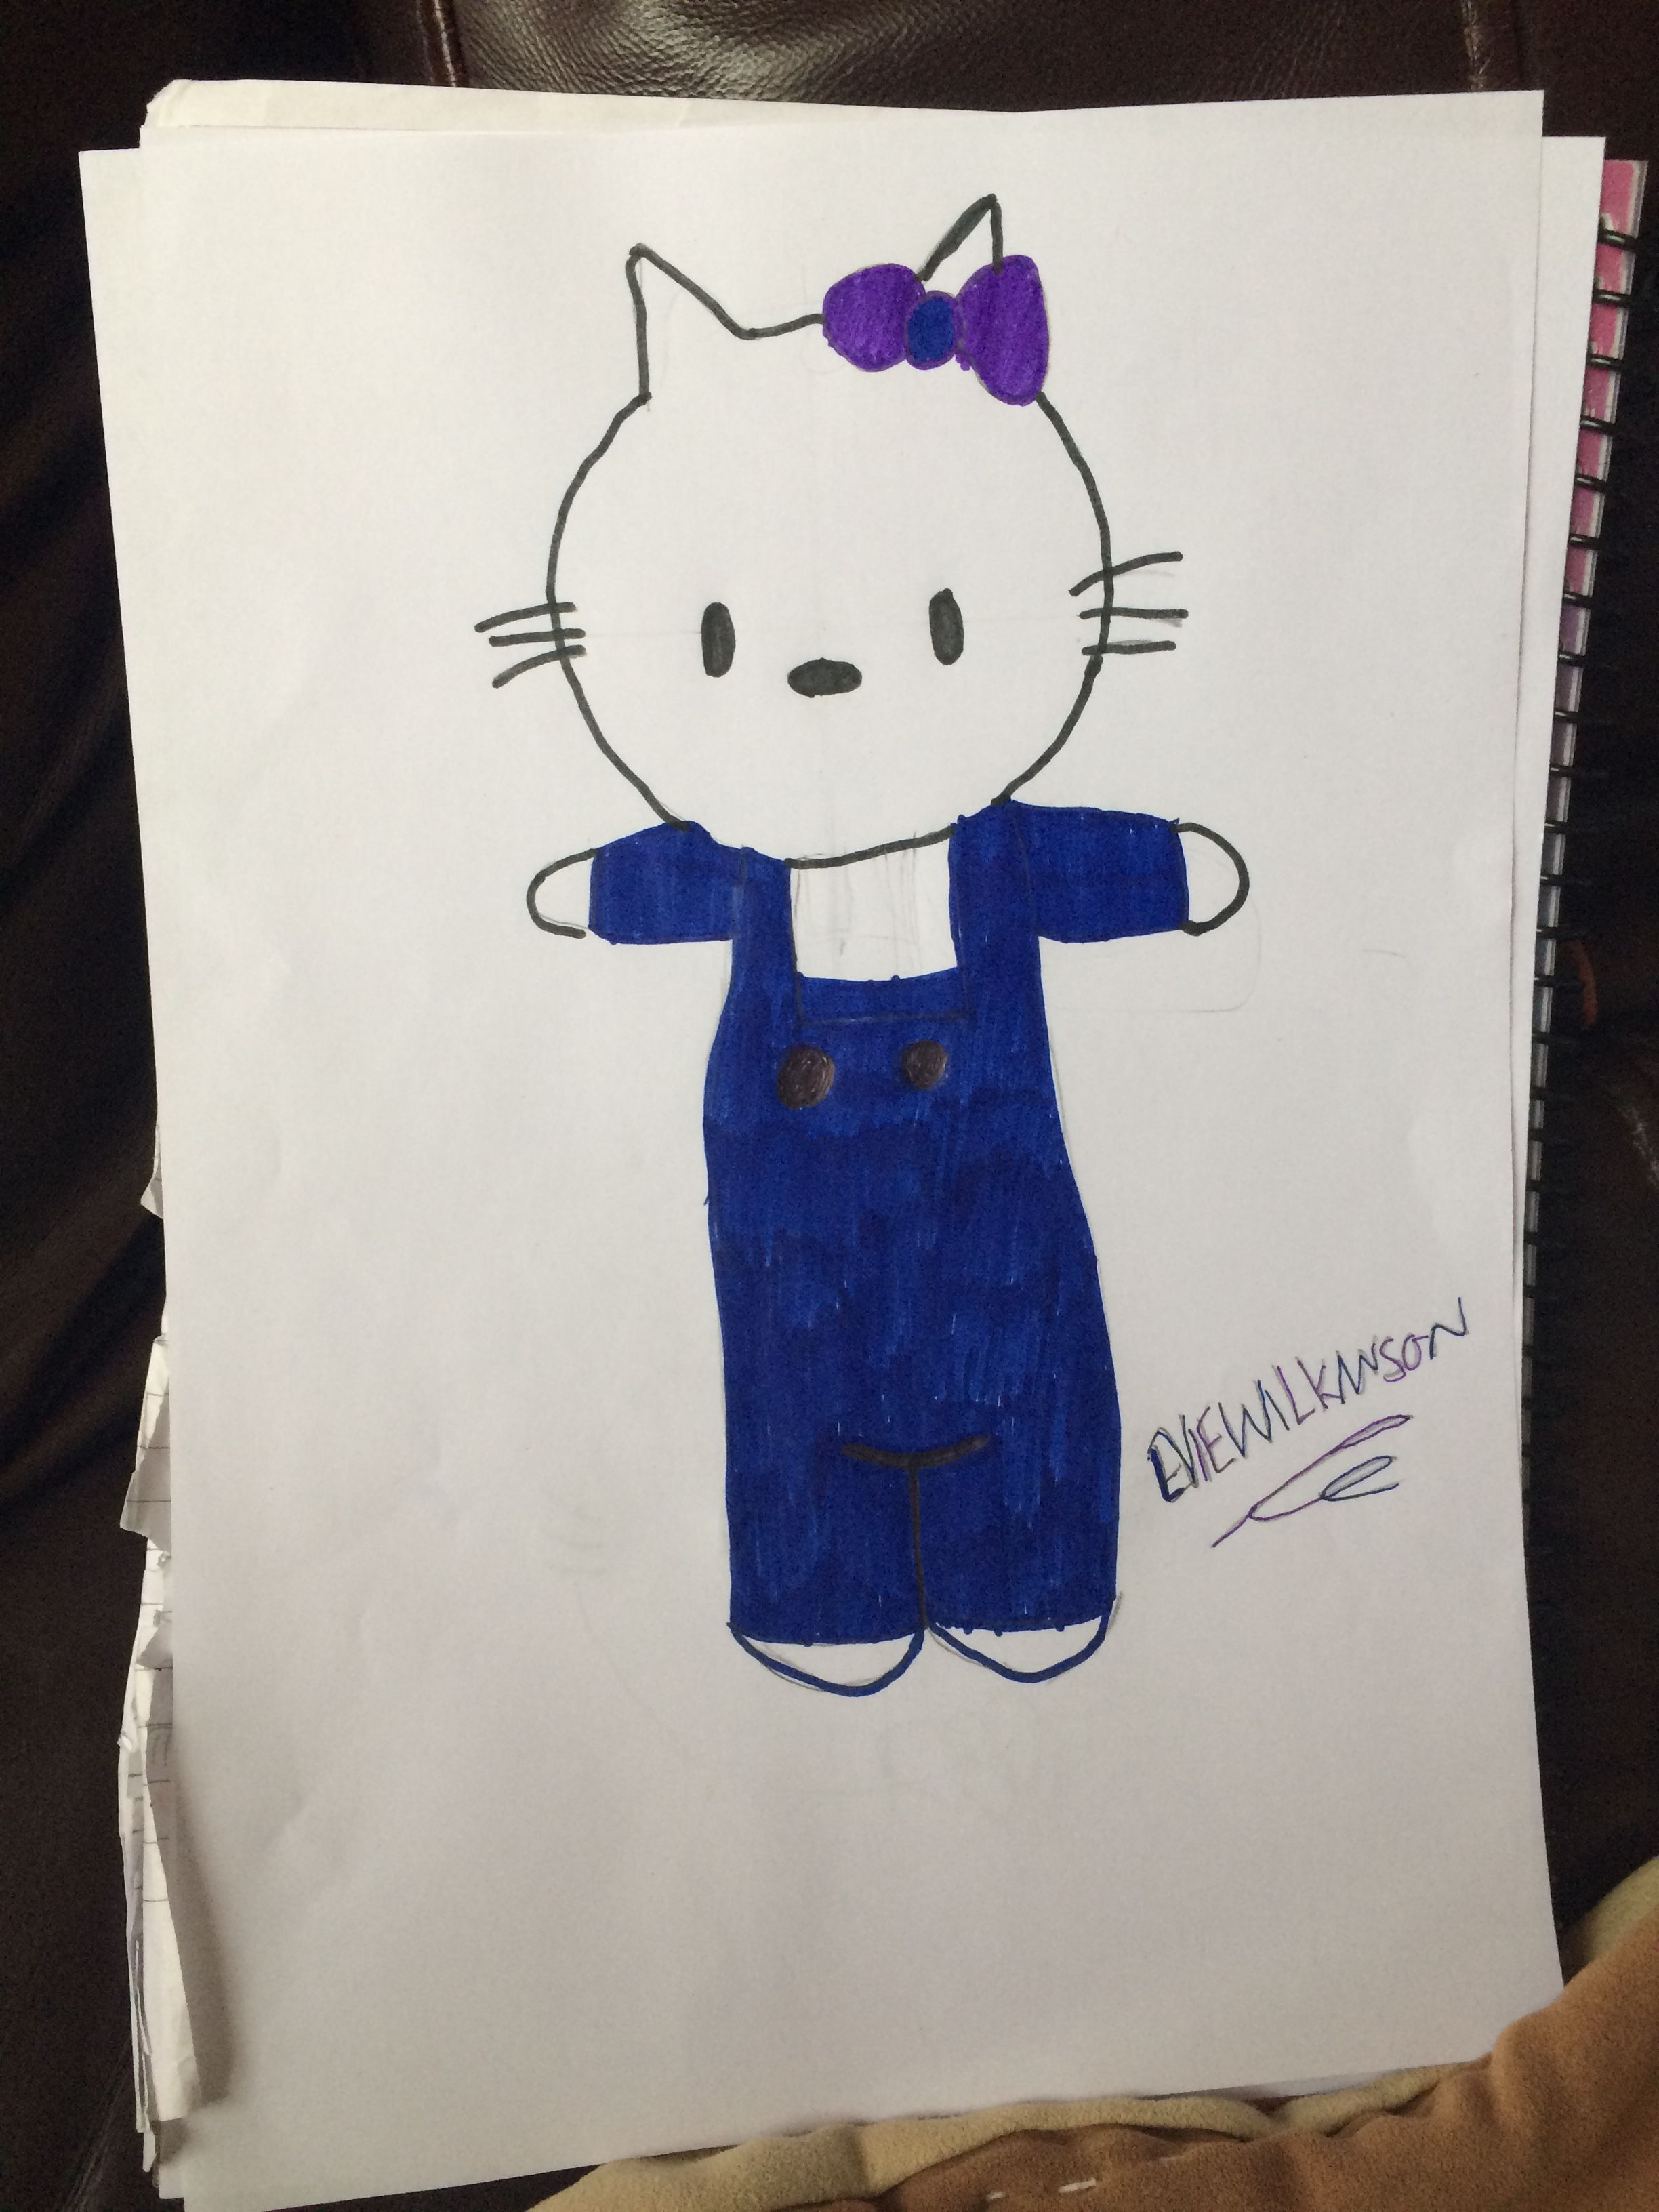 A home-drawn image of the Disney character Hello Kitty 🐱. Drawn by me!! OPINIONS PLEASE!!